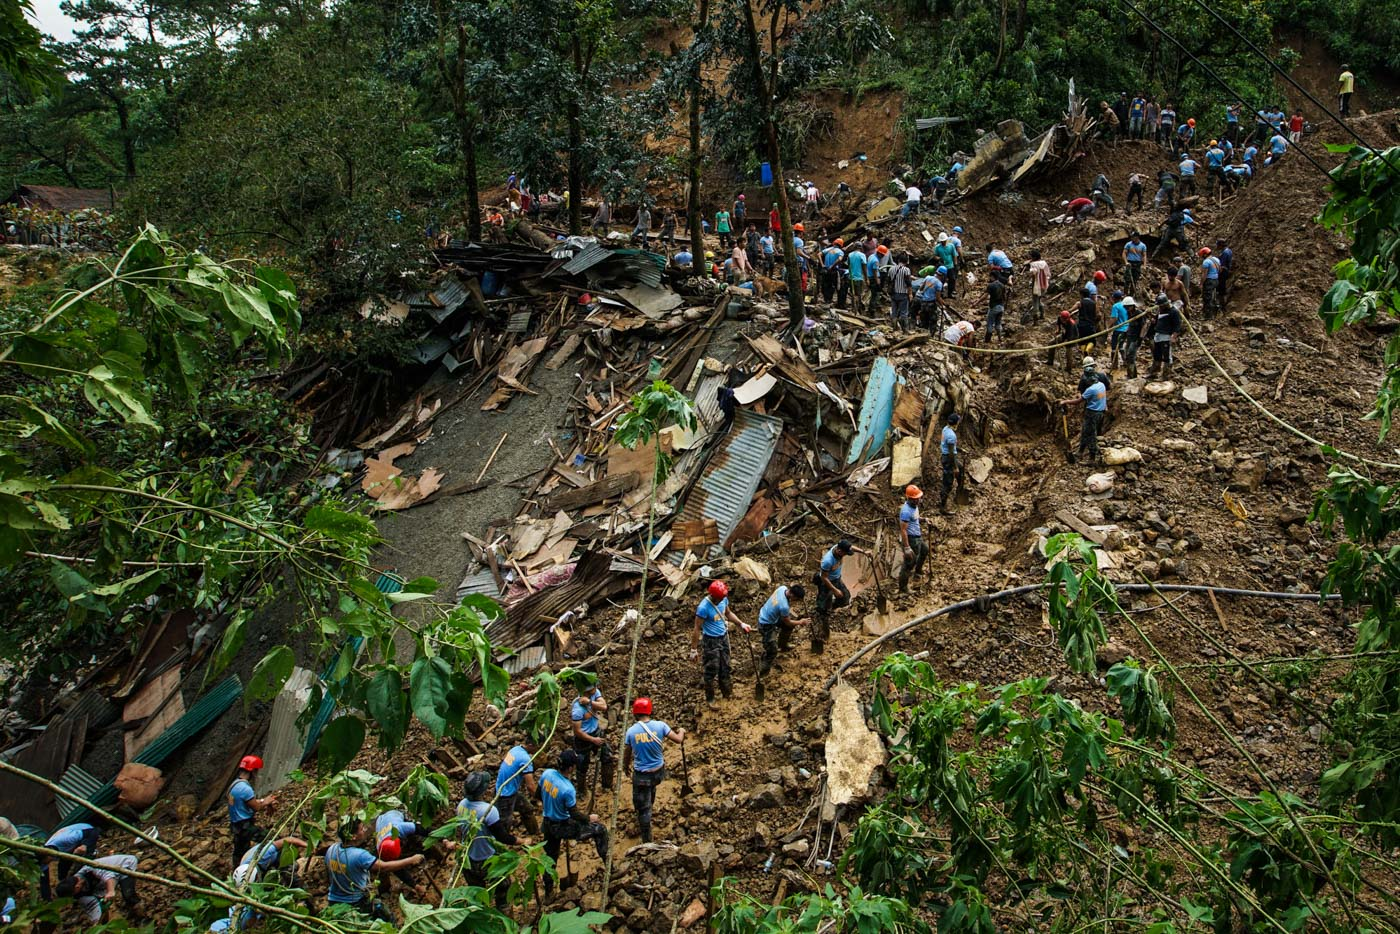 ITOGON. Police and rescue teams continue the search for bodies buried by the landslide in Ucab, Itogon in Benguet, on September 17, 2018. Photo by Jire Carreon/Rappler